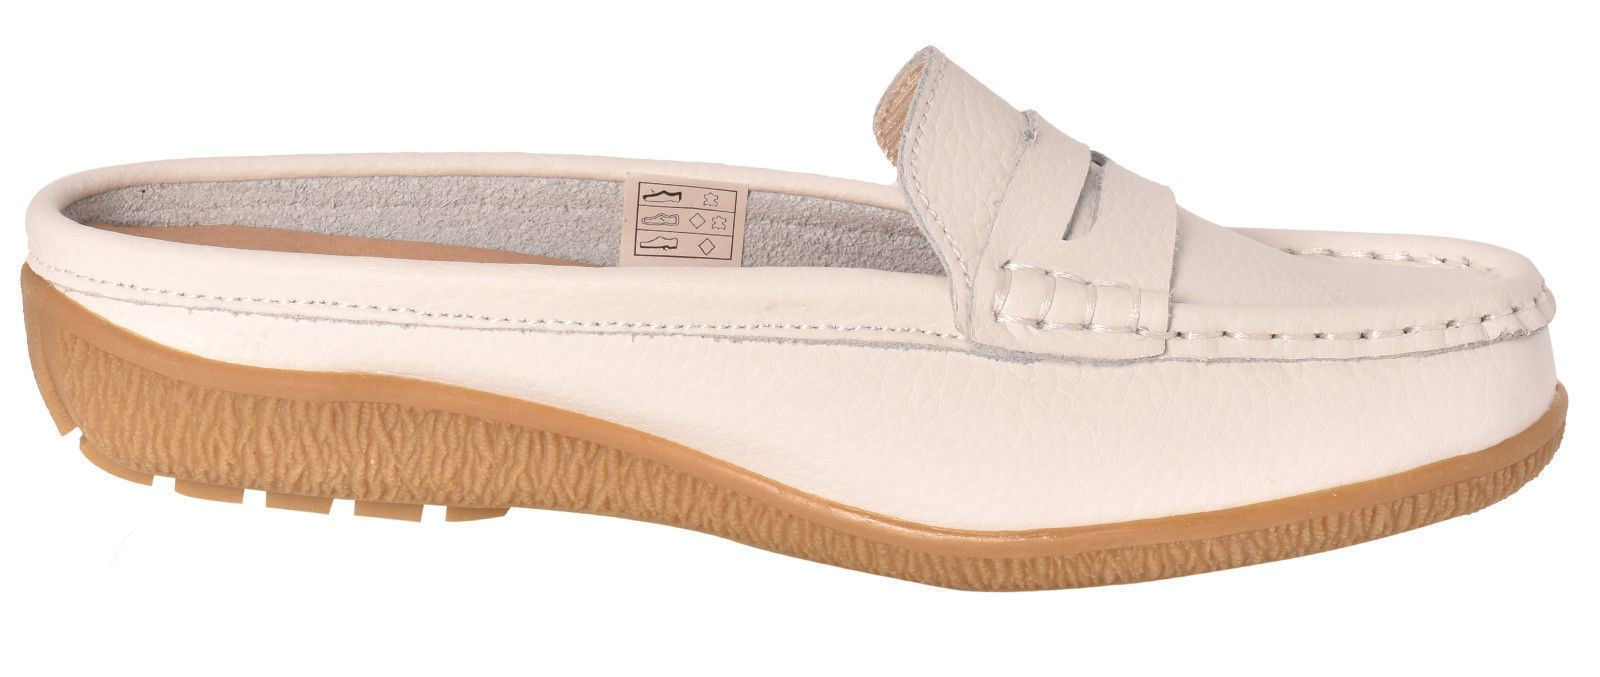 Ladies-Leather-Loafer-Mules-Comfort-Shoes-Womens-Slider-Moccasins-Shoes thumbnail 39